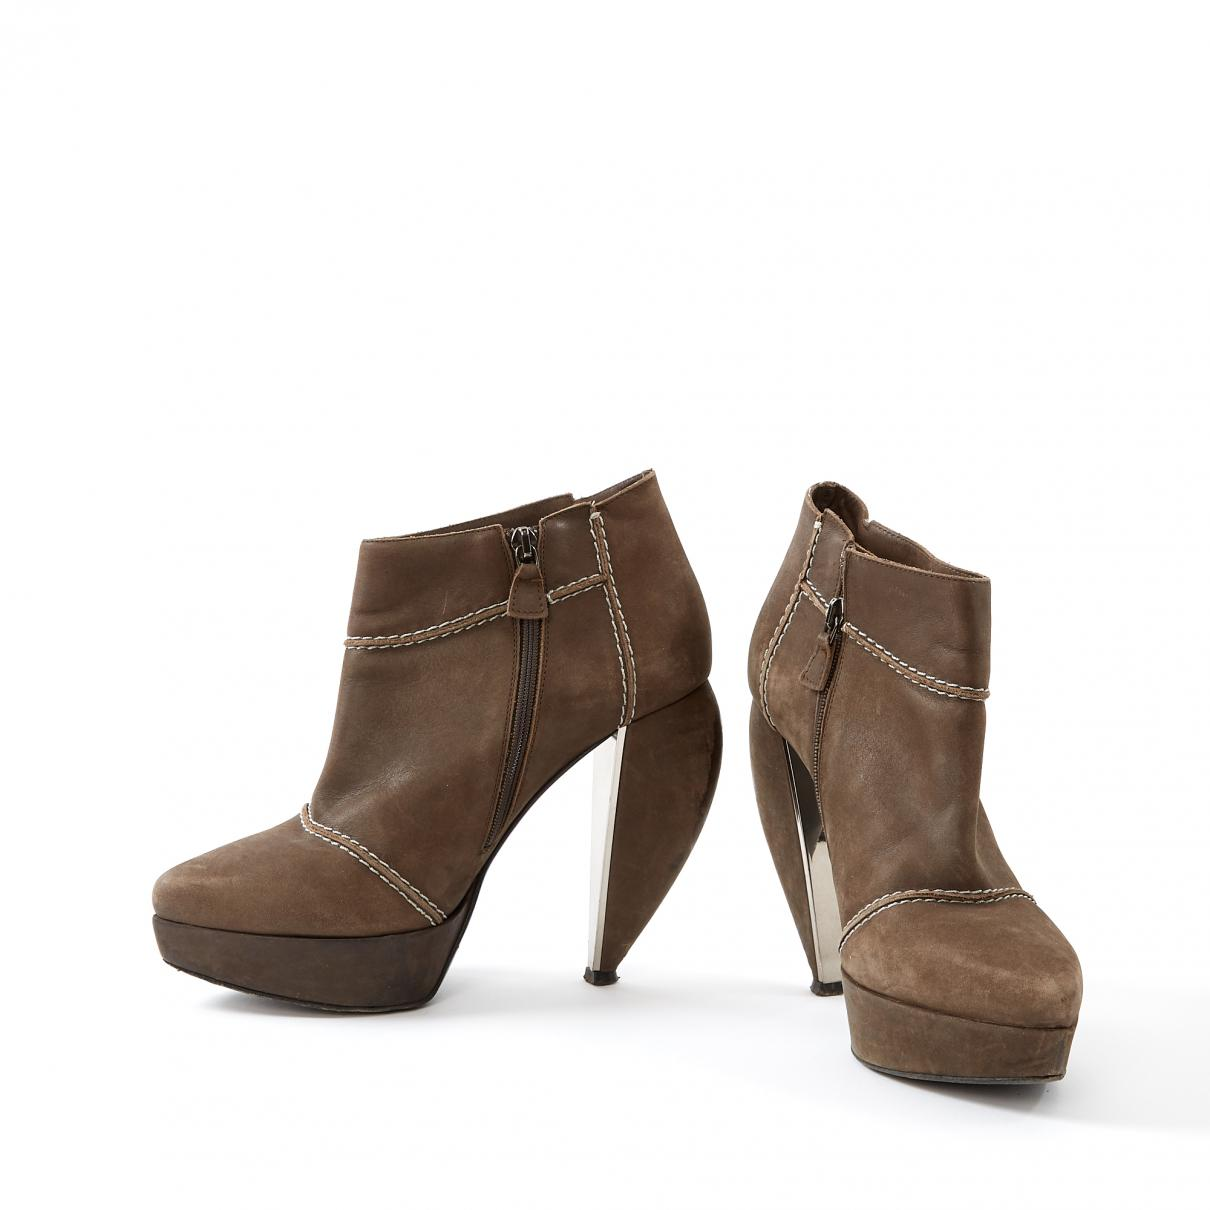 5130c7156a9b Lanvin - Brown Leather Ankle Boots - Lyst. View fullscreen